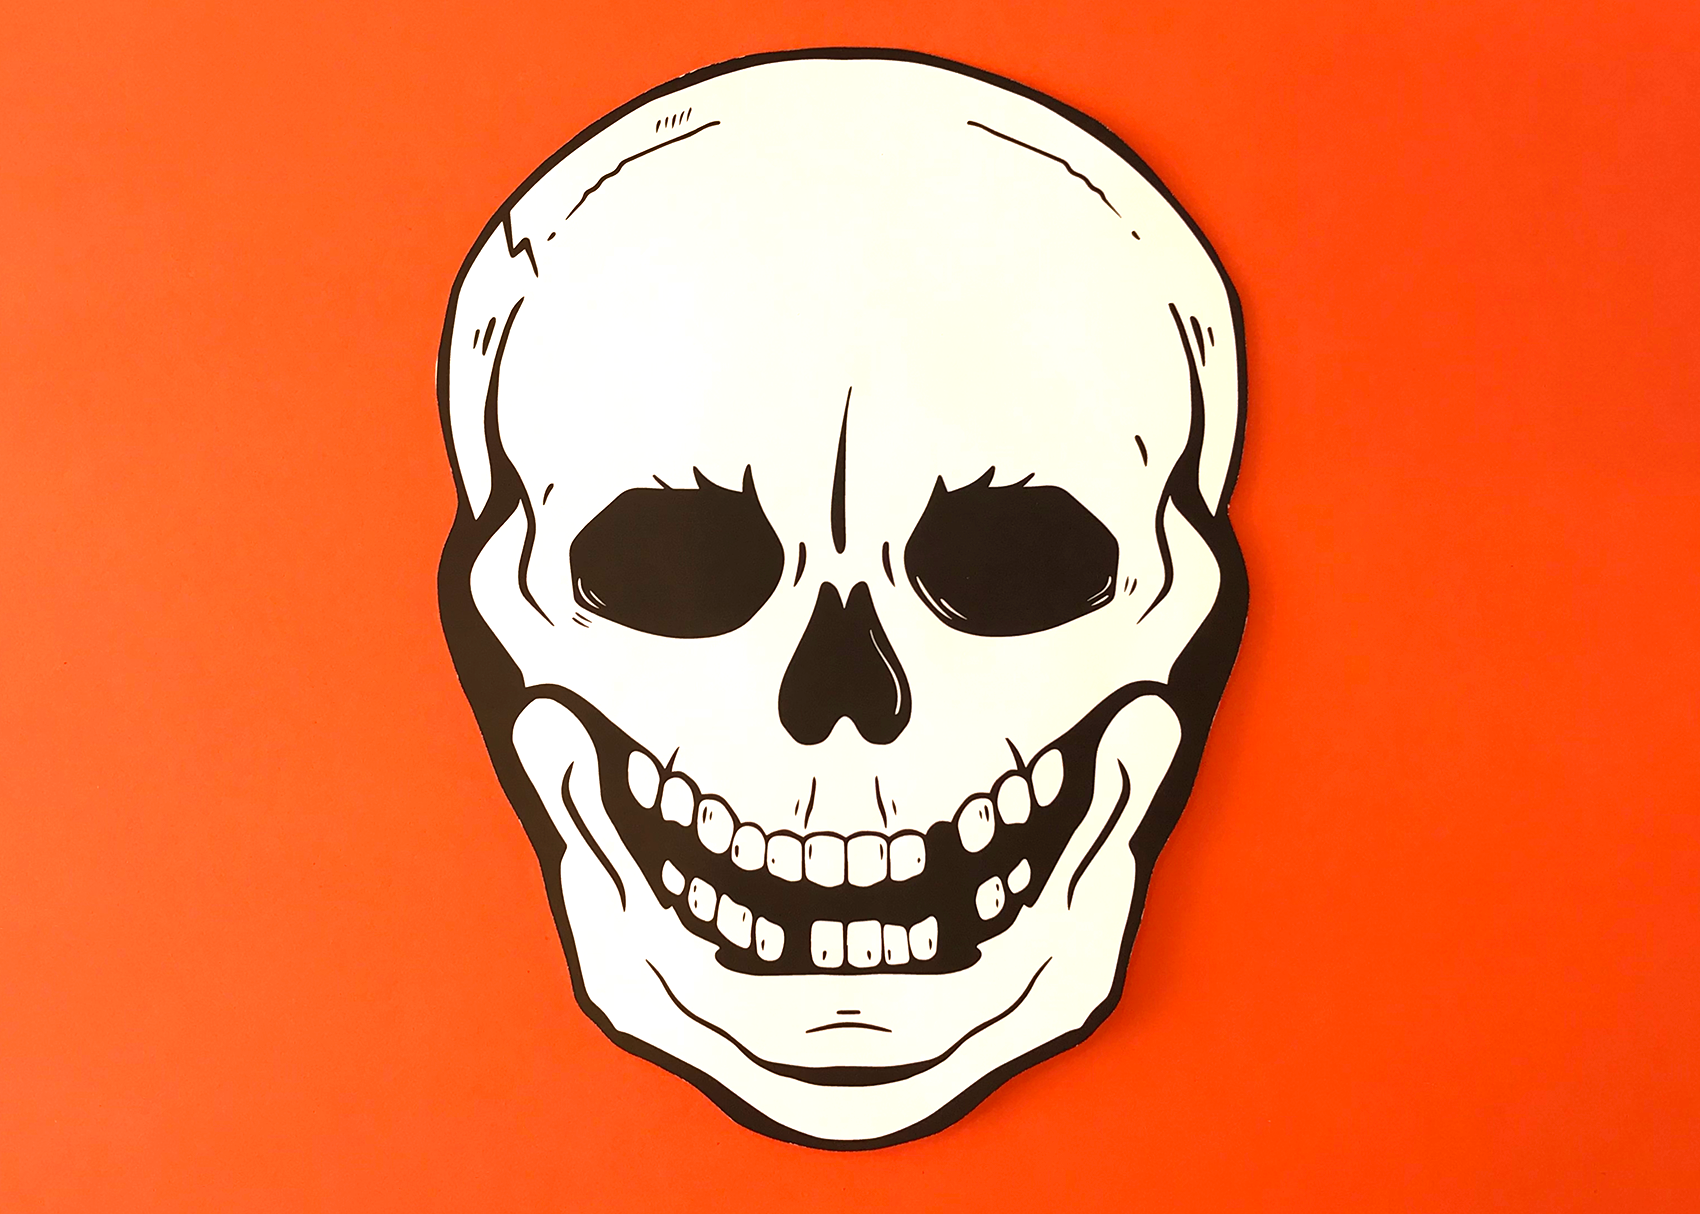 Skull template orange background